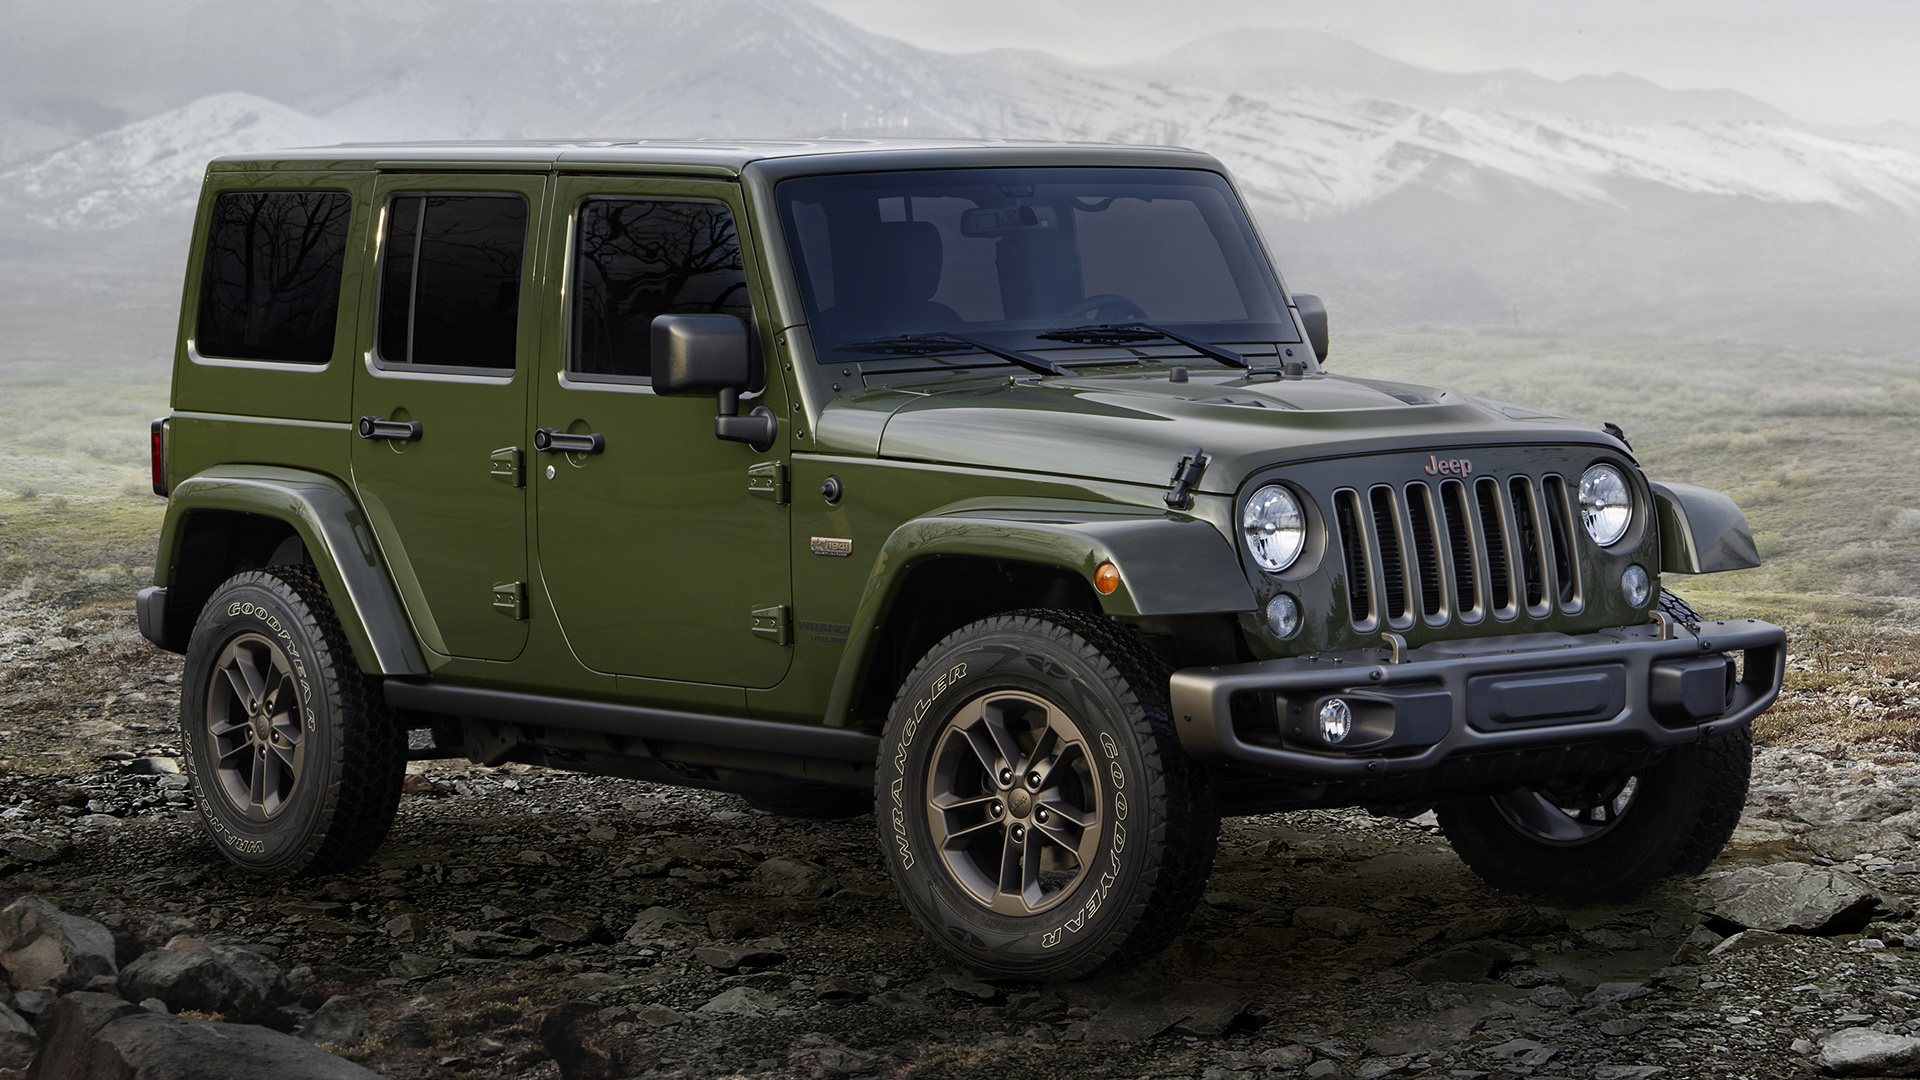 2007 Jeep Wrangler Unlimited Sahara >> 2016 Jeep Wrangler Unlimited 75th Anniversary - Wallpapers ...